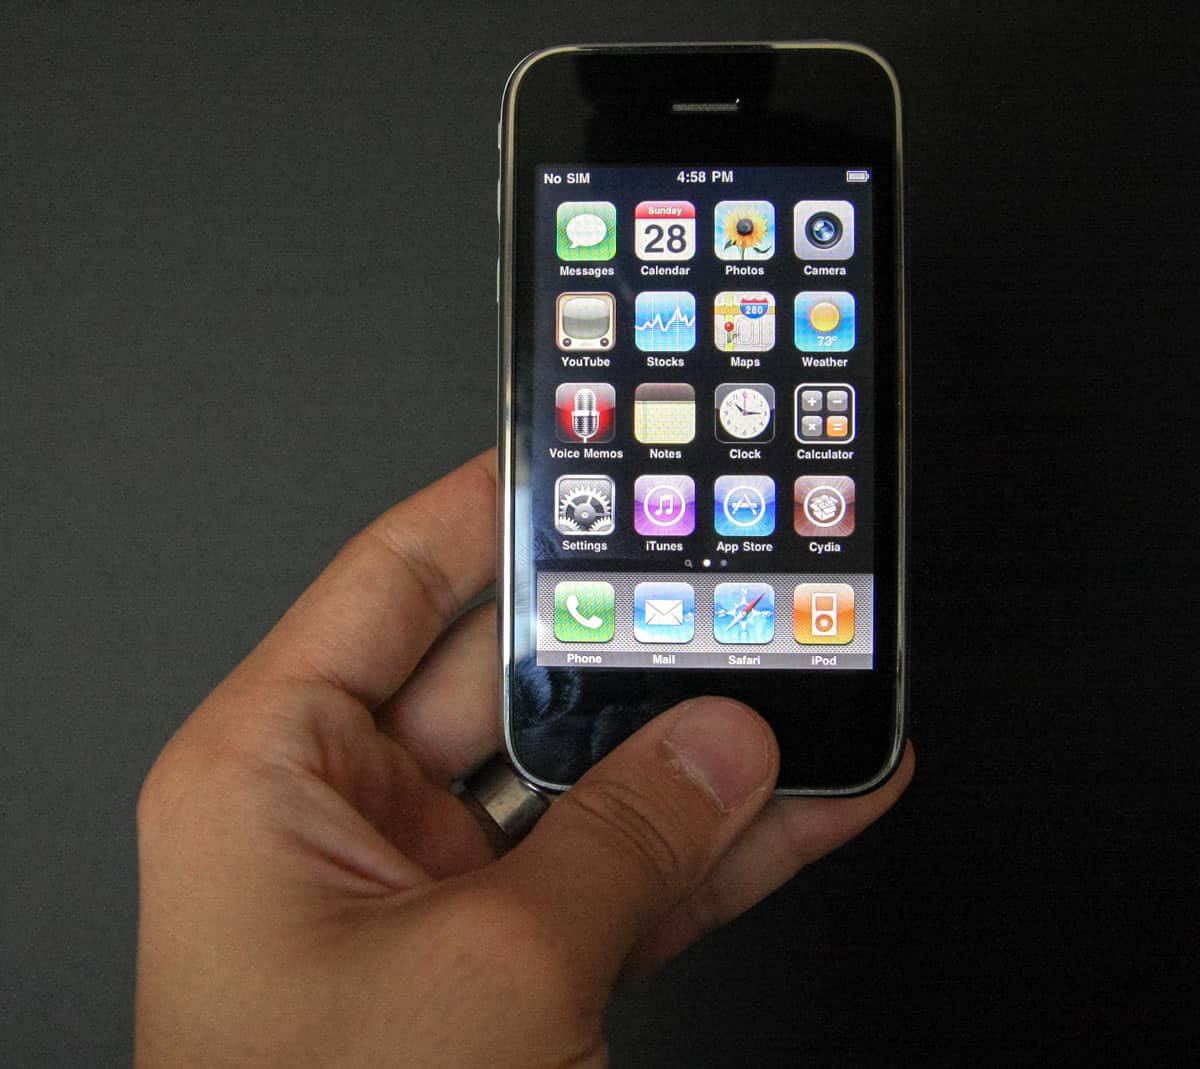 An image of an iPhone 3G in a man's hand.